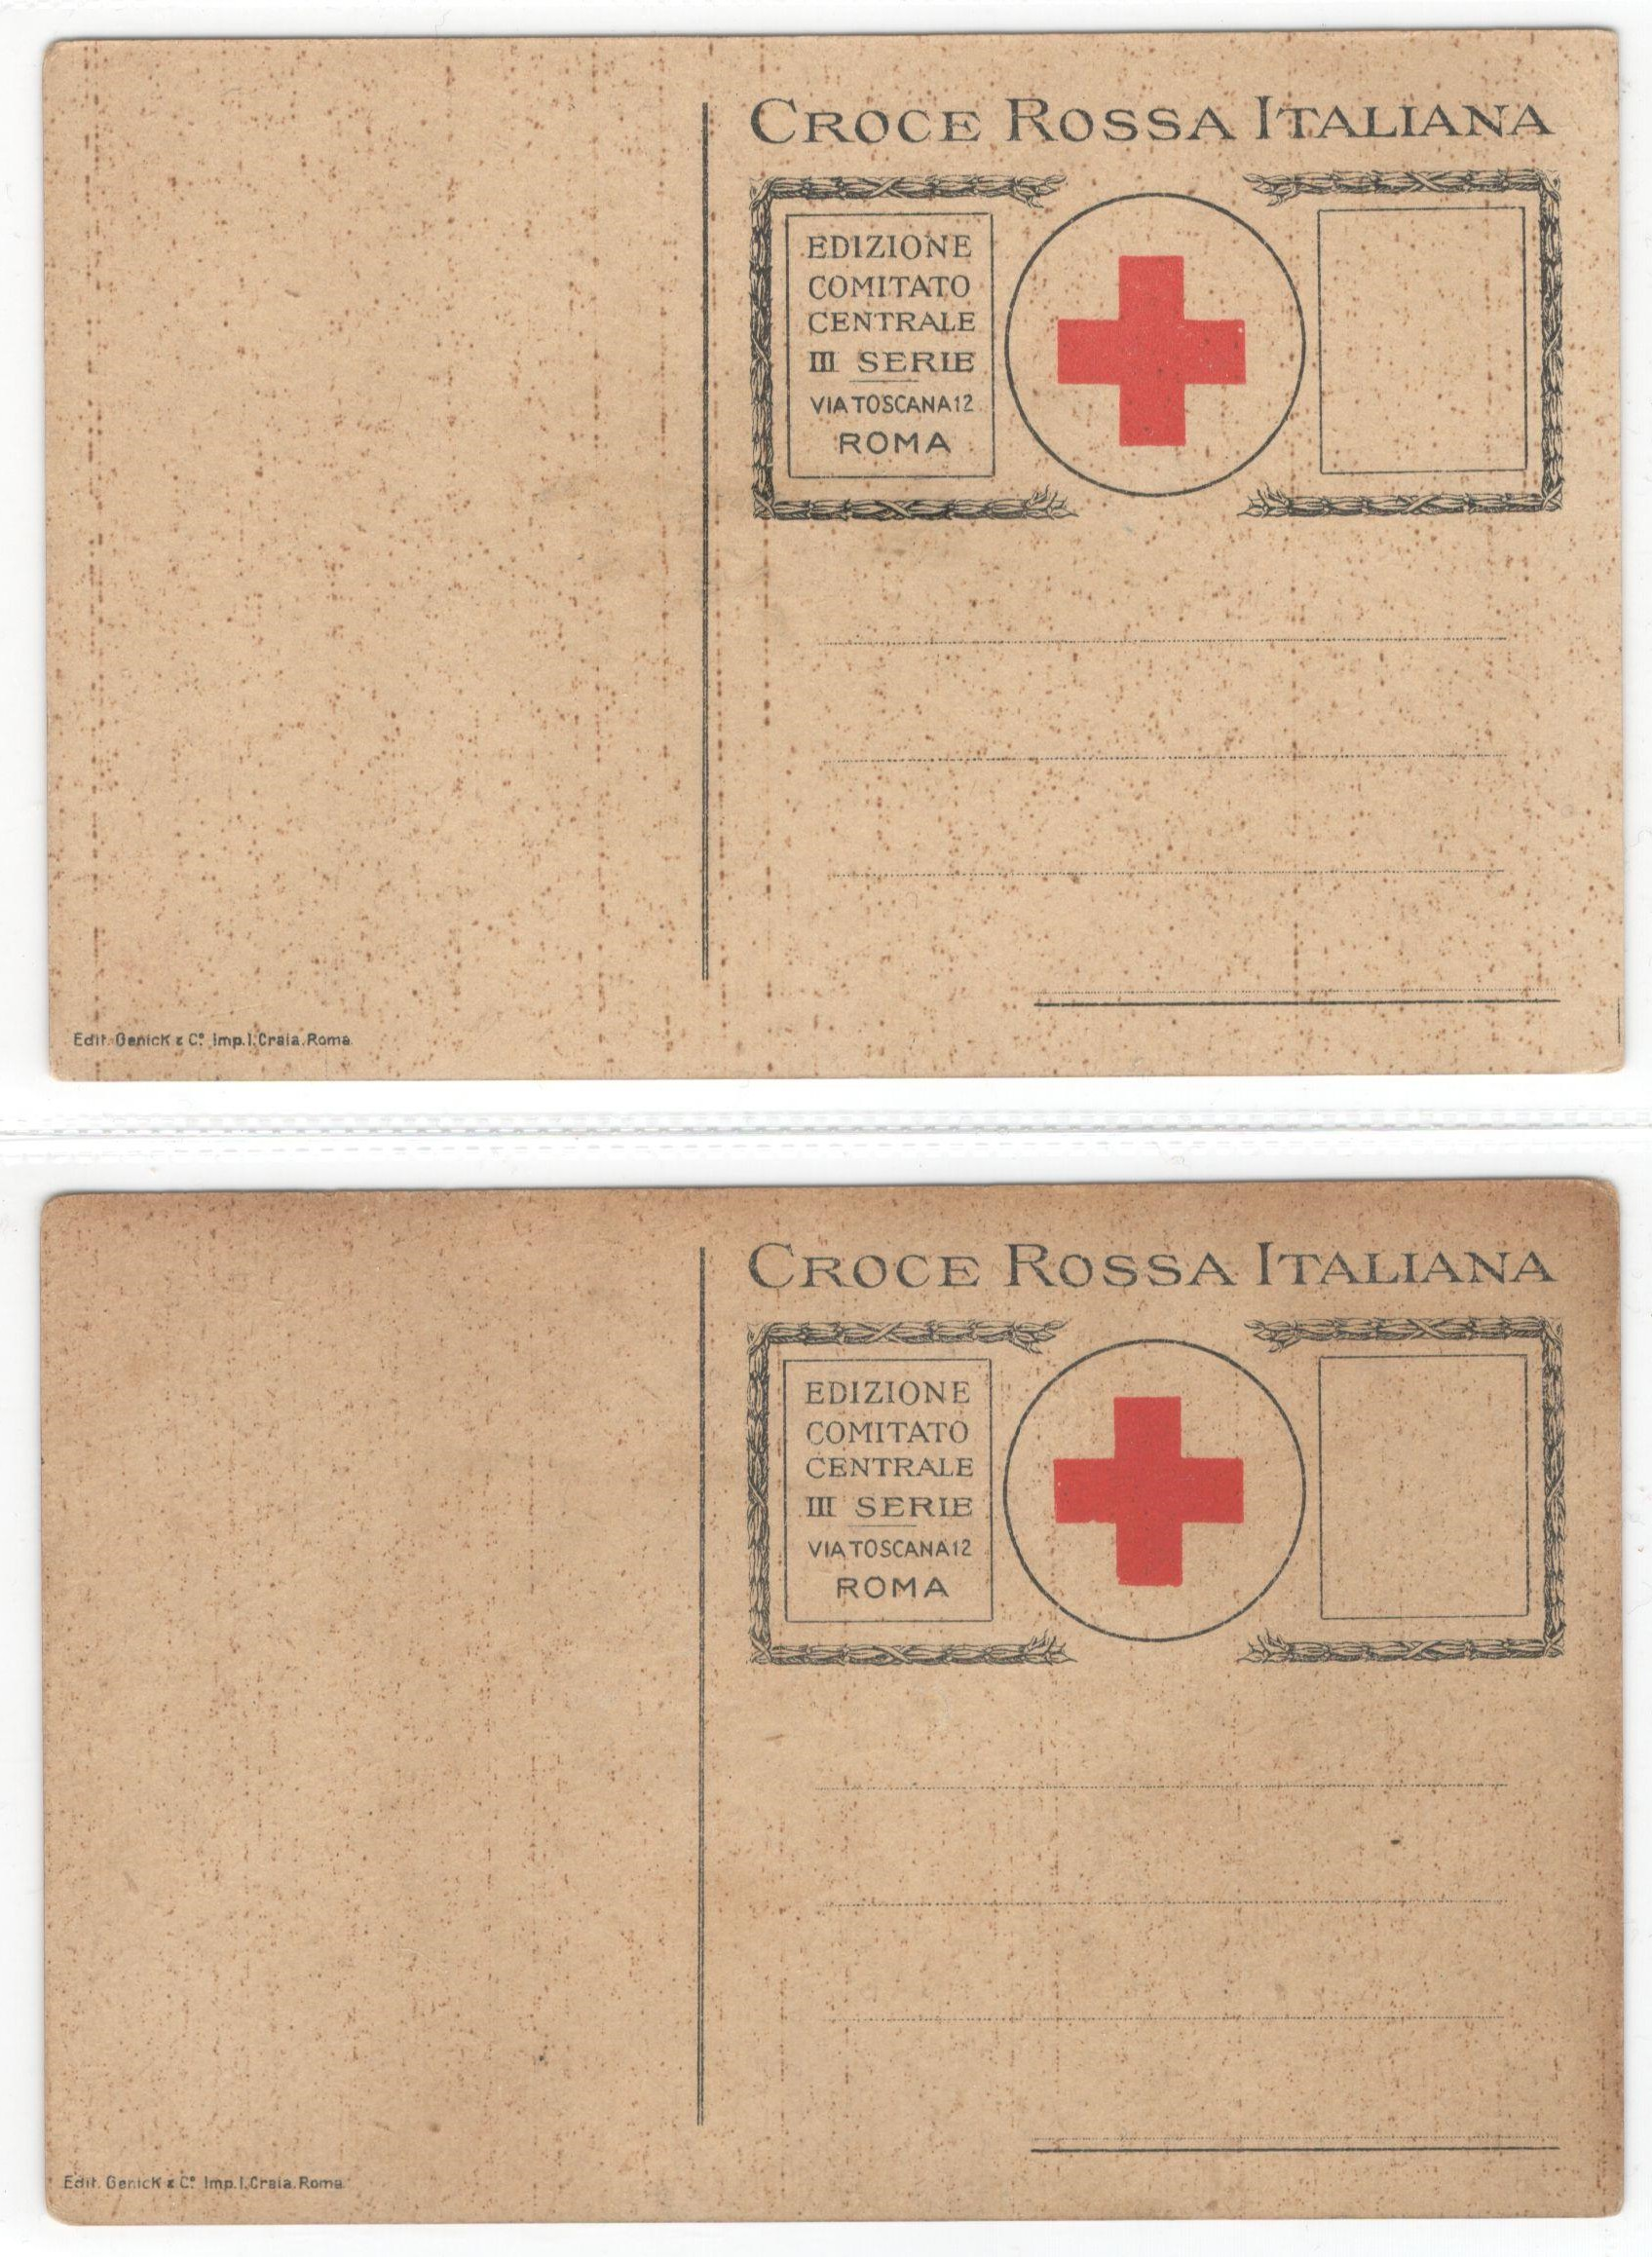 TWO VINTAGE ITALIAN RED CROSS POSTCARDS - CROCE ROSSA ITALIANA FRATTURE & ASFISSIA - Image 2 of 2